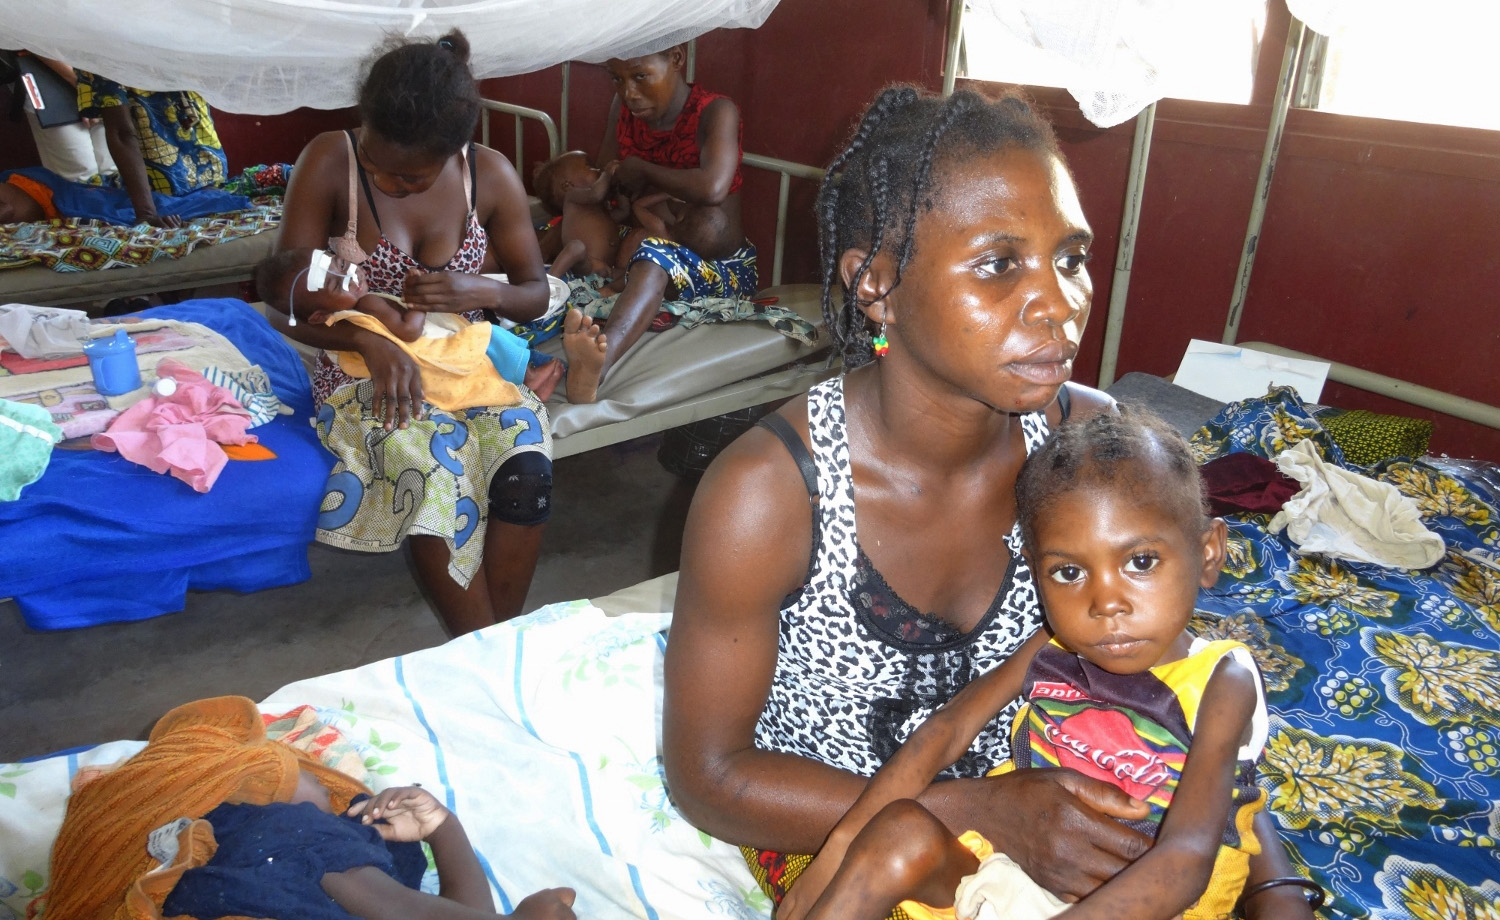 Malnourished child with mother at the Complexe Pediatrique (children's hospital) in Bangui, CAR